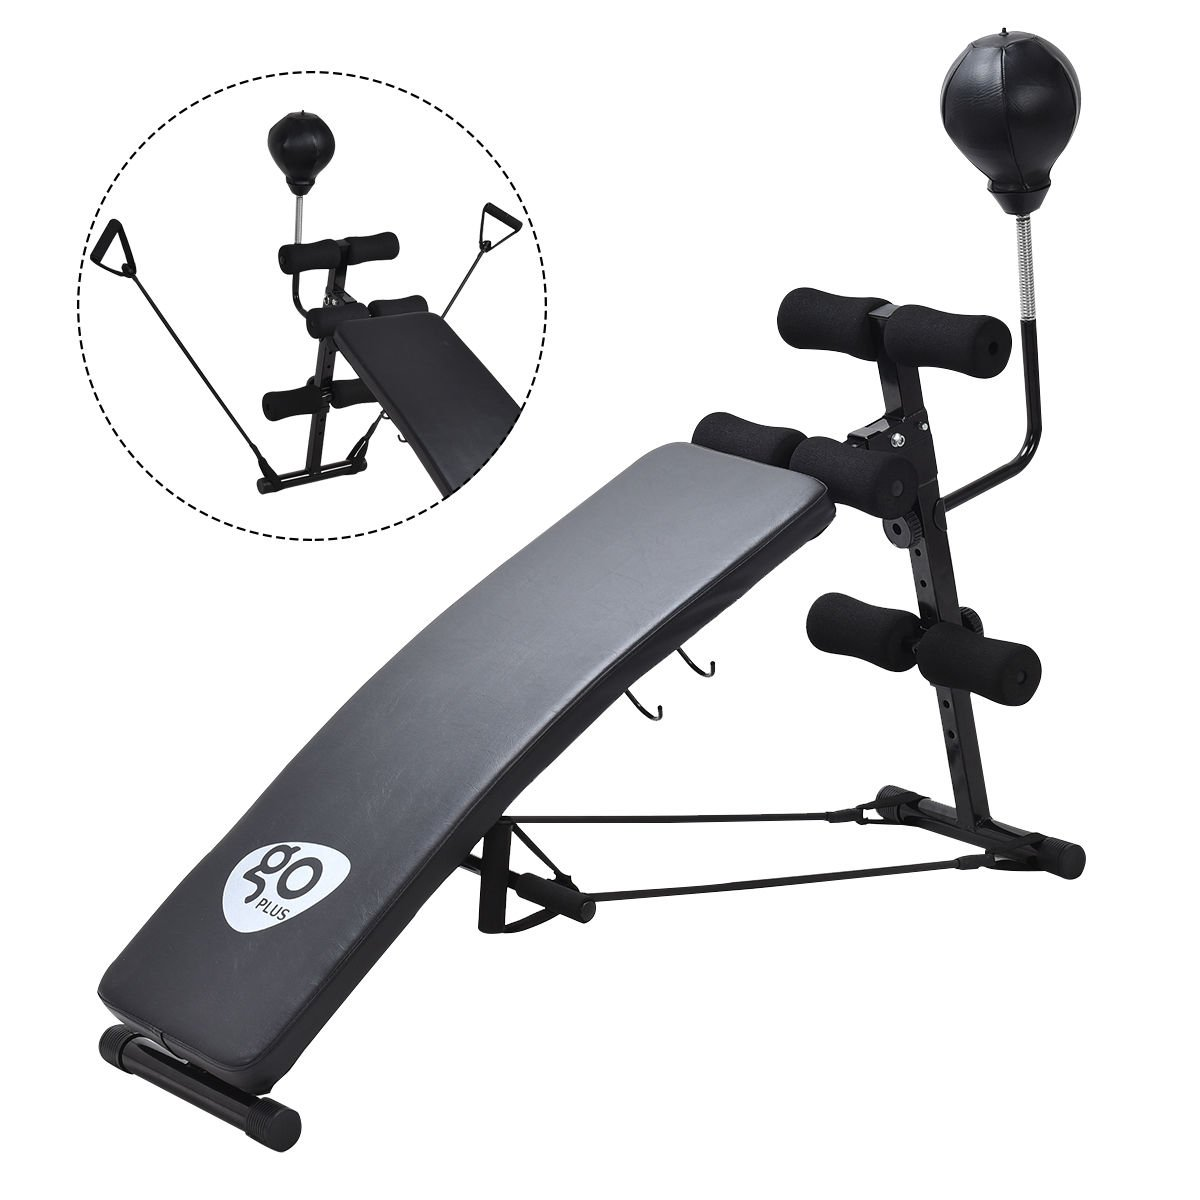 Goplus Adjustable Incline Weight Bench Curved Sit Up Bench Board W/ Speed Ball and Pull Ropes